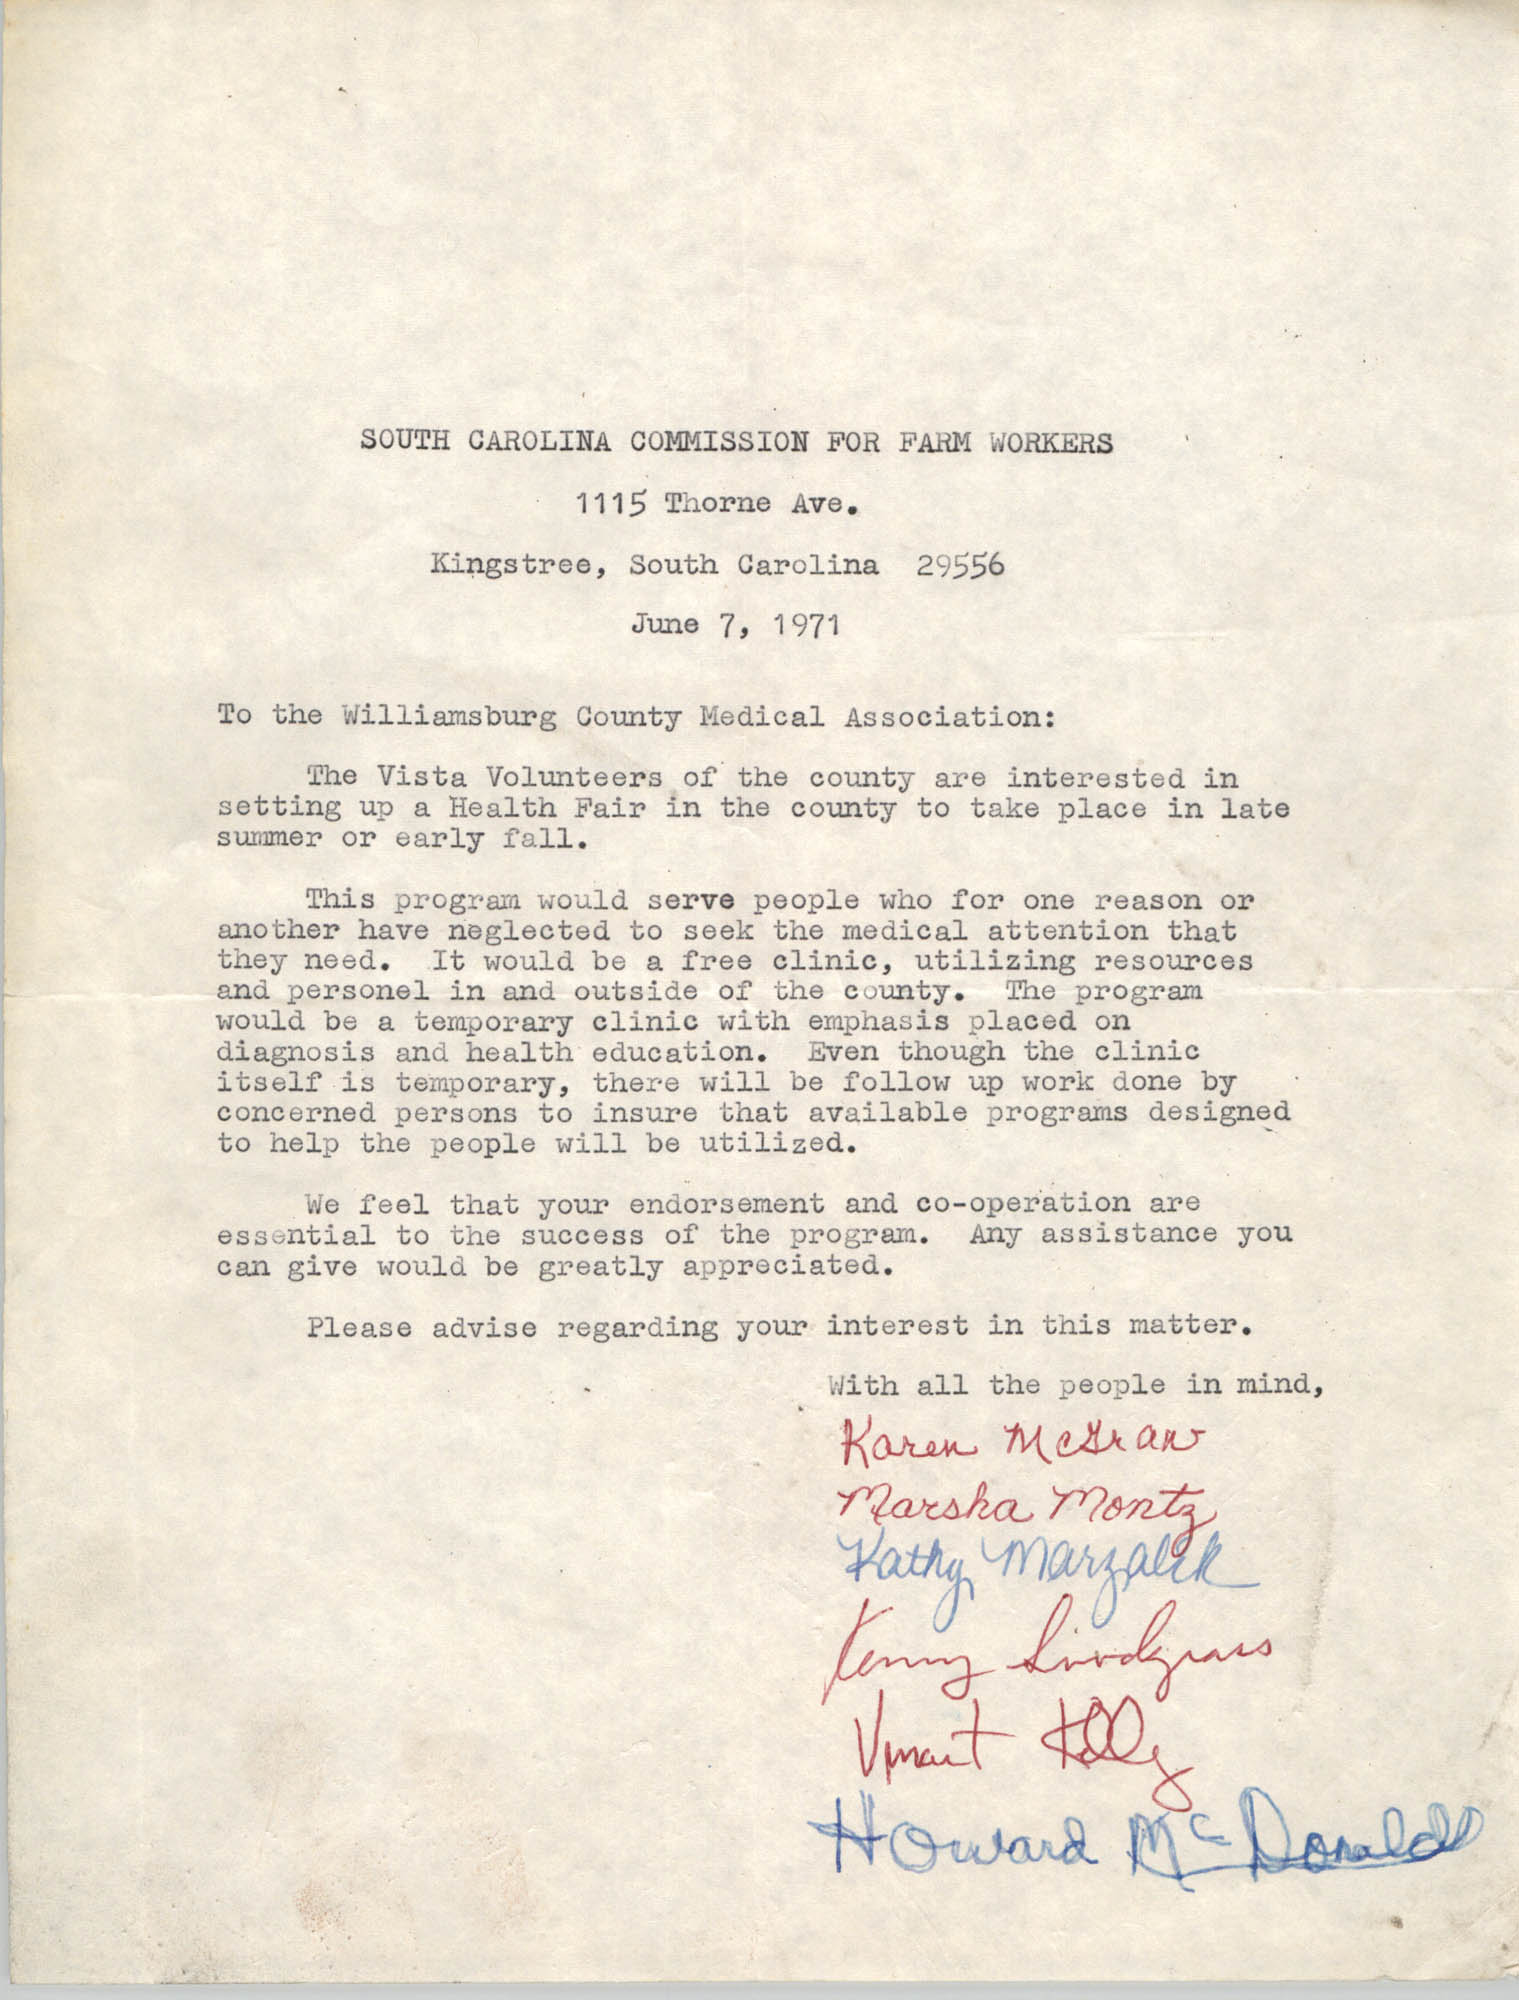 Letter from South Carolina Commission for Farm Workers to Williamsburg County Medical Association